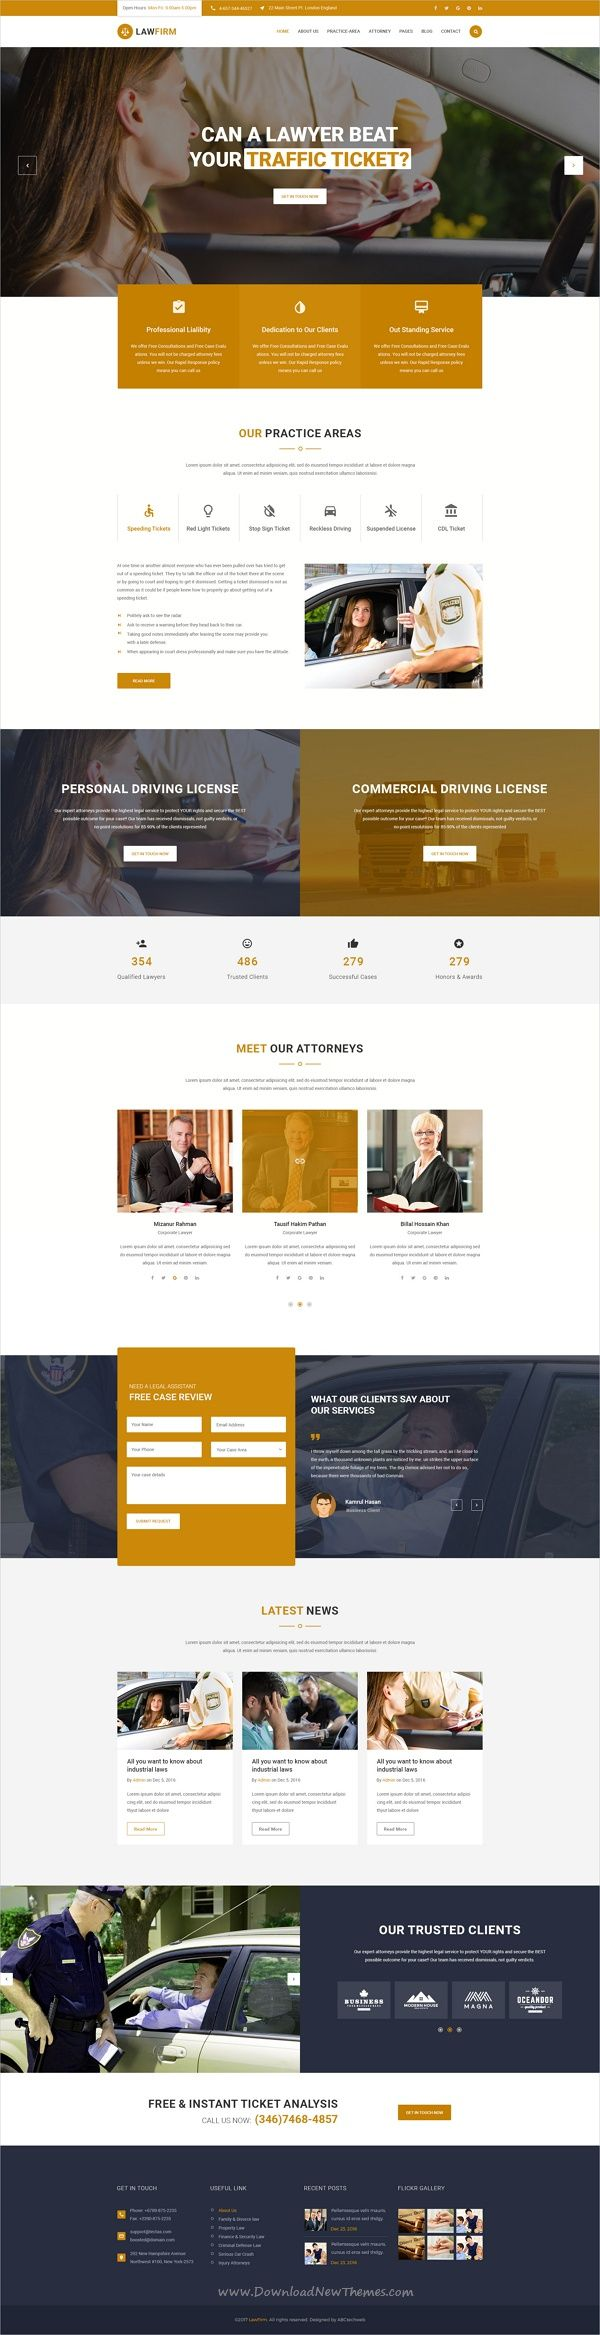 LawFirm is a professional and modern design #PSD template for attorney, lawyers, #legal #officers or advocates website with 21+ layered PSD files download now➩ https://themeforest.net/item/lawfirm-injury-traffic-ticket-wealth-planning-defense-construction-insurance-psd-template/19738419?ref=Datasata